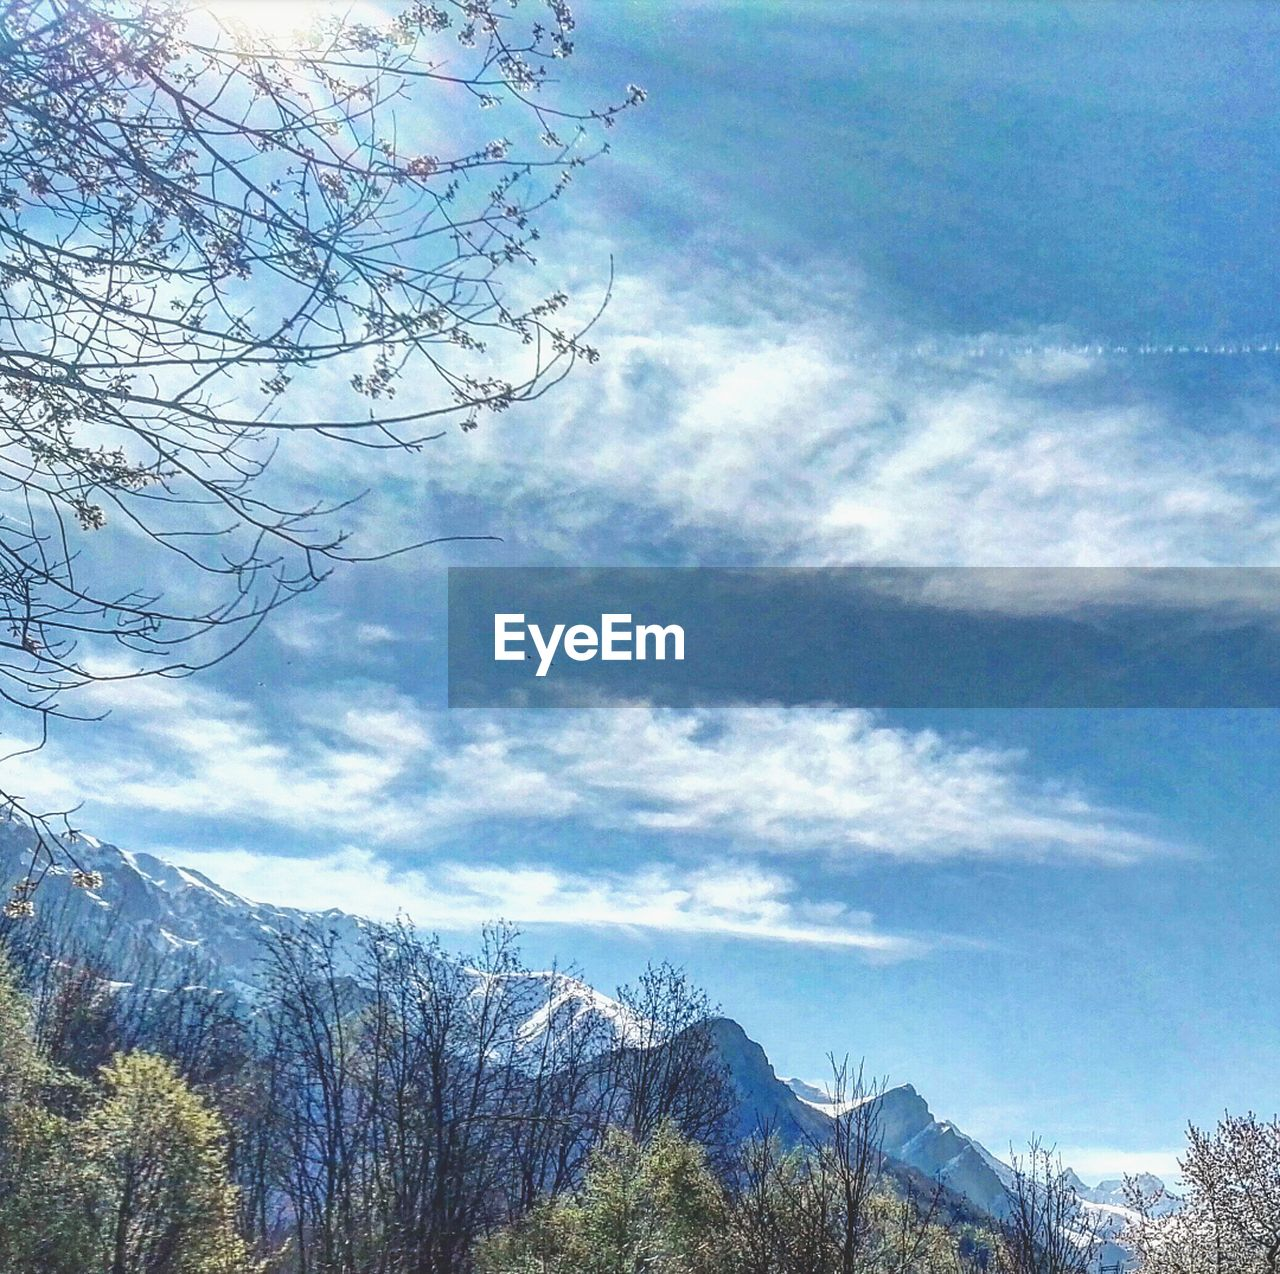 sky, nature, tree, bare tree, beauty in nature, scenics, mountain, tranquility, day, cloud - sky, snow, tranquil scene, branch, winter, cold temperature, outdoors, no people, landscape, low angle view, mountain range, forest